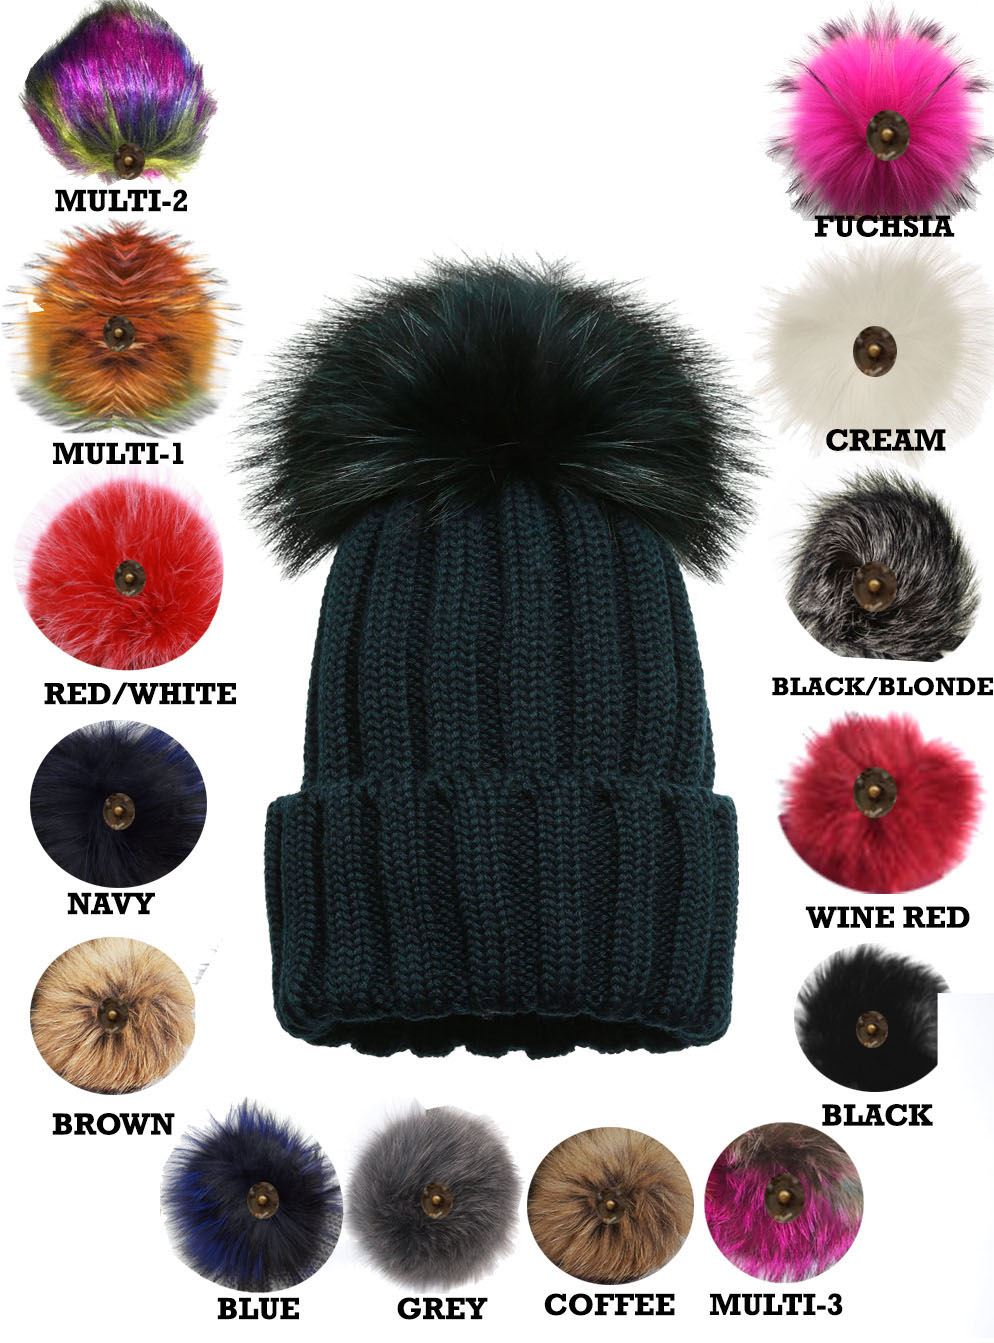 aca11928c Details about New Ladies Knitted Detachable Faux Fur Pom Pom Customizable  Bobble Hat